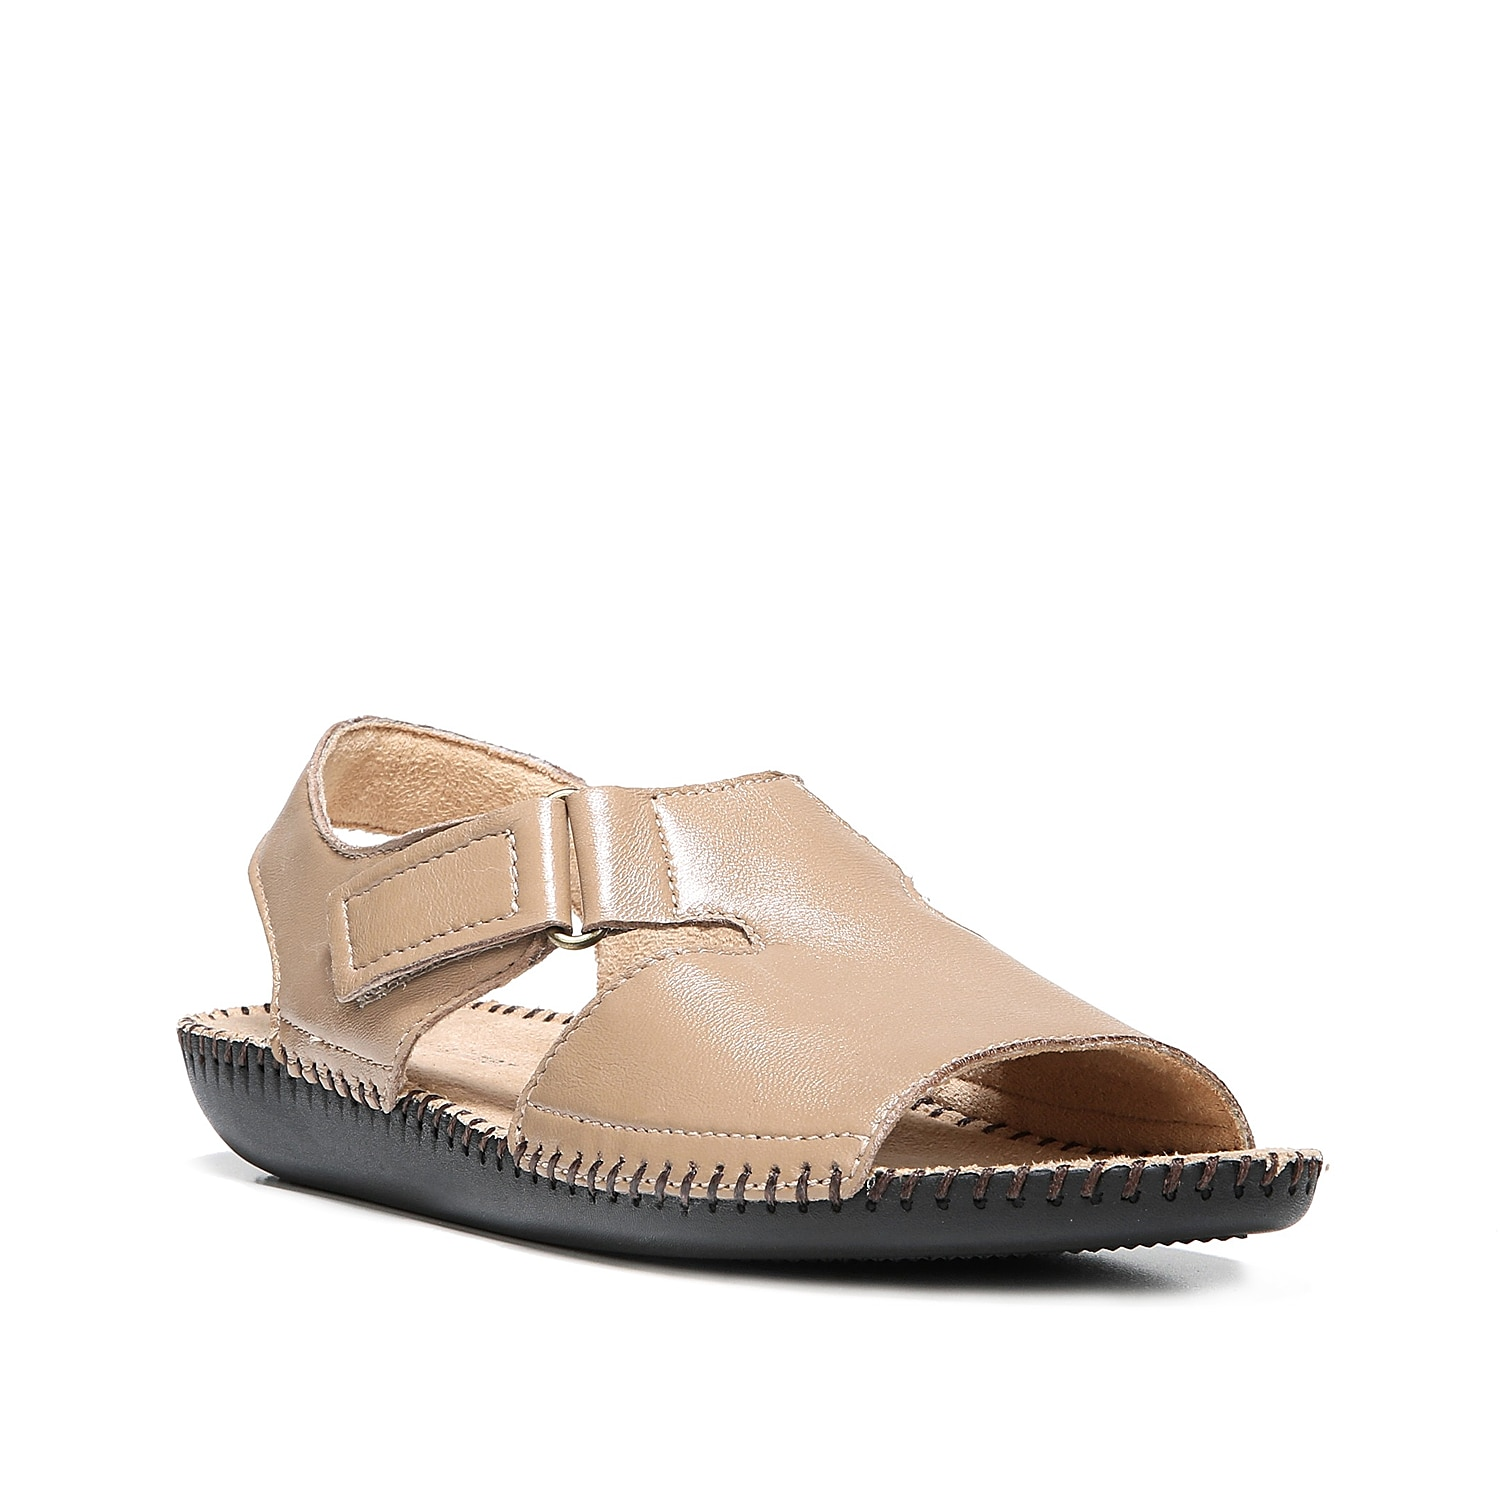 Look and feel your best in the Scout sandal from Naturalizer. With a smooth leather finish, this pair is sure to last.